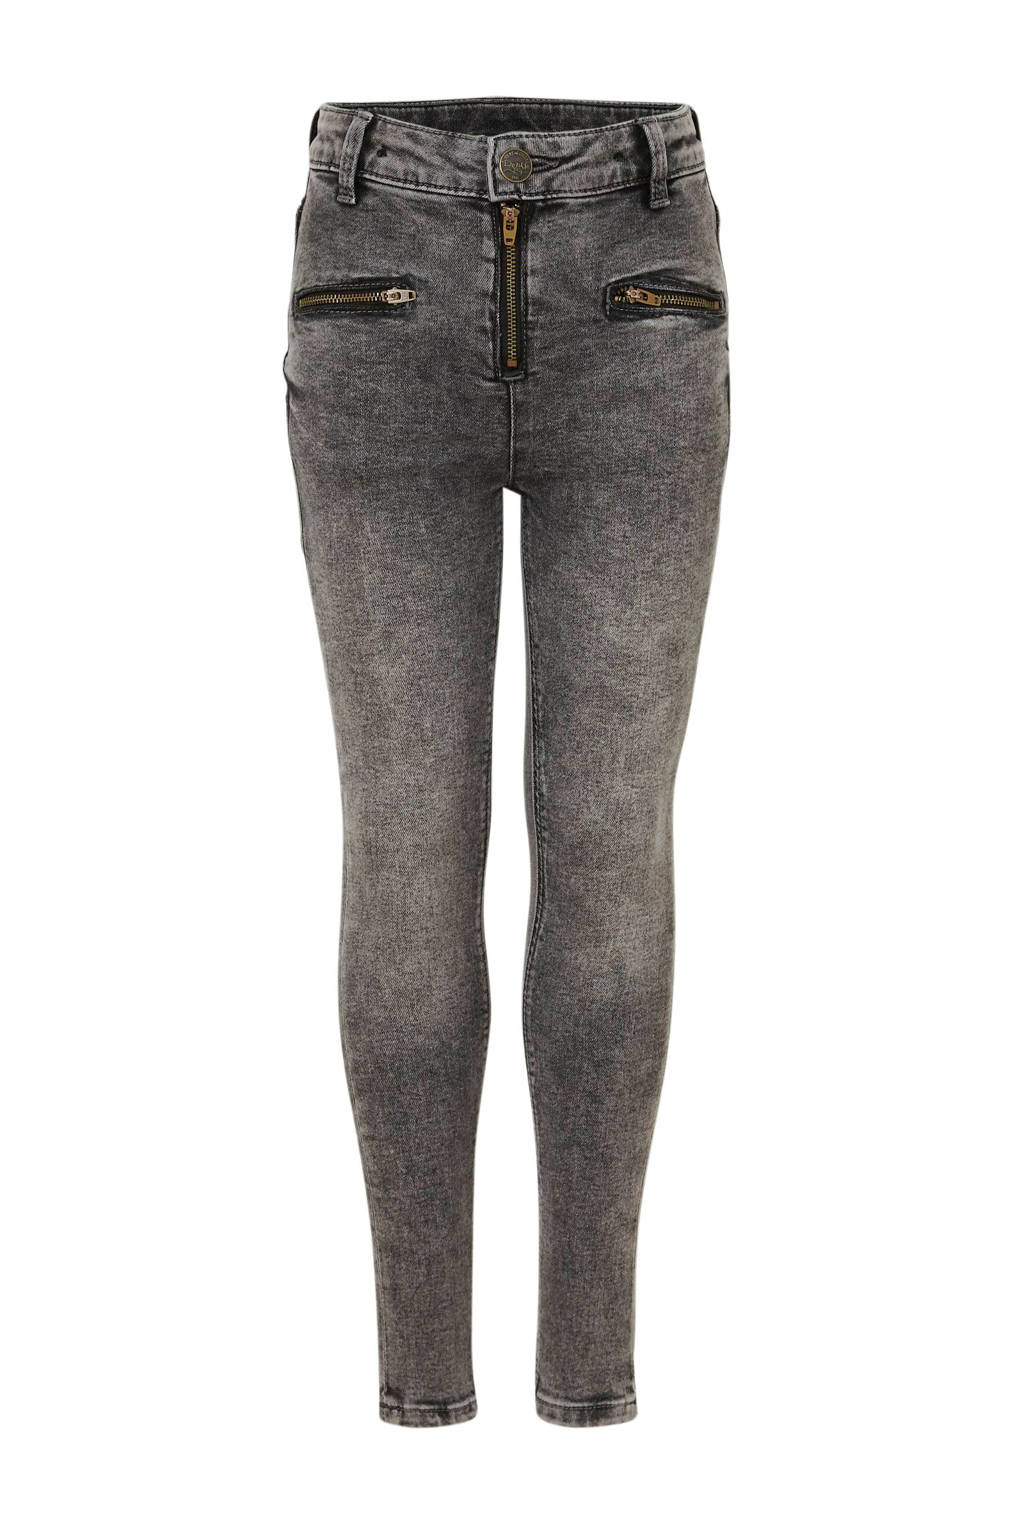 C&A Here & There skinny jeans grijs stonewashed, Grijs stonewashed